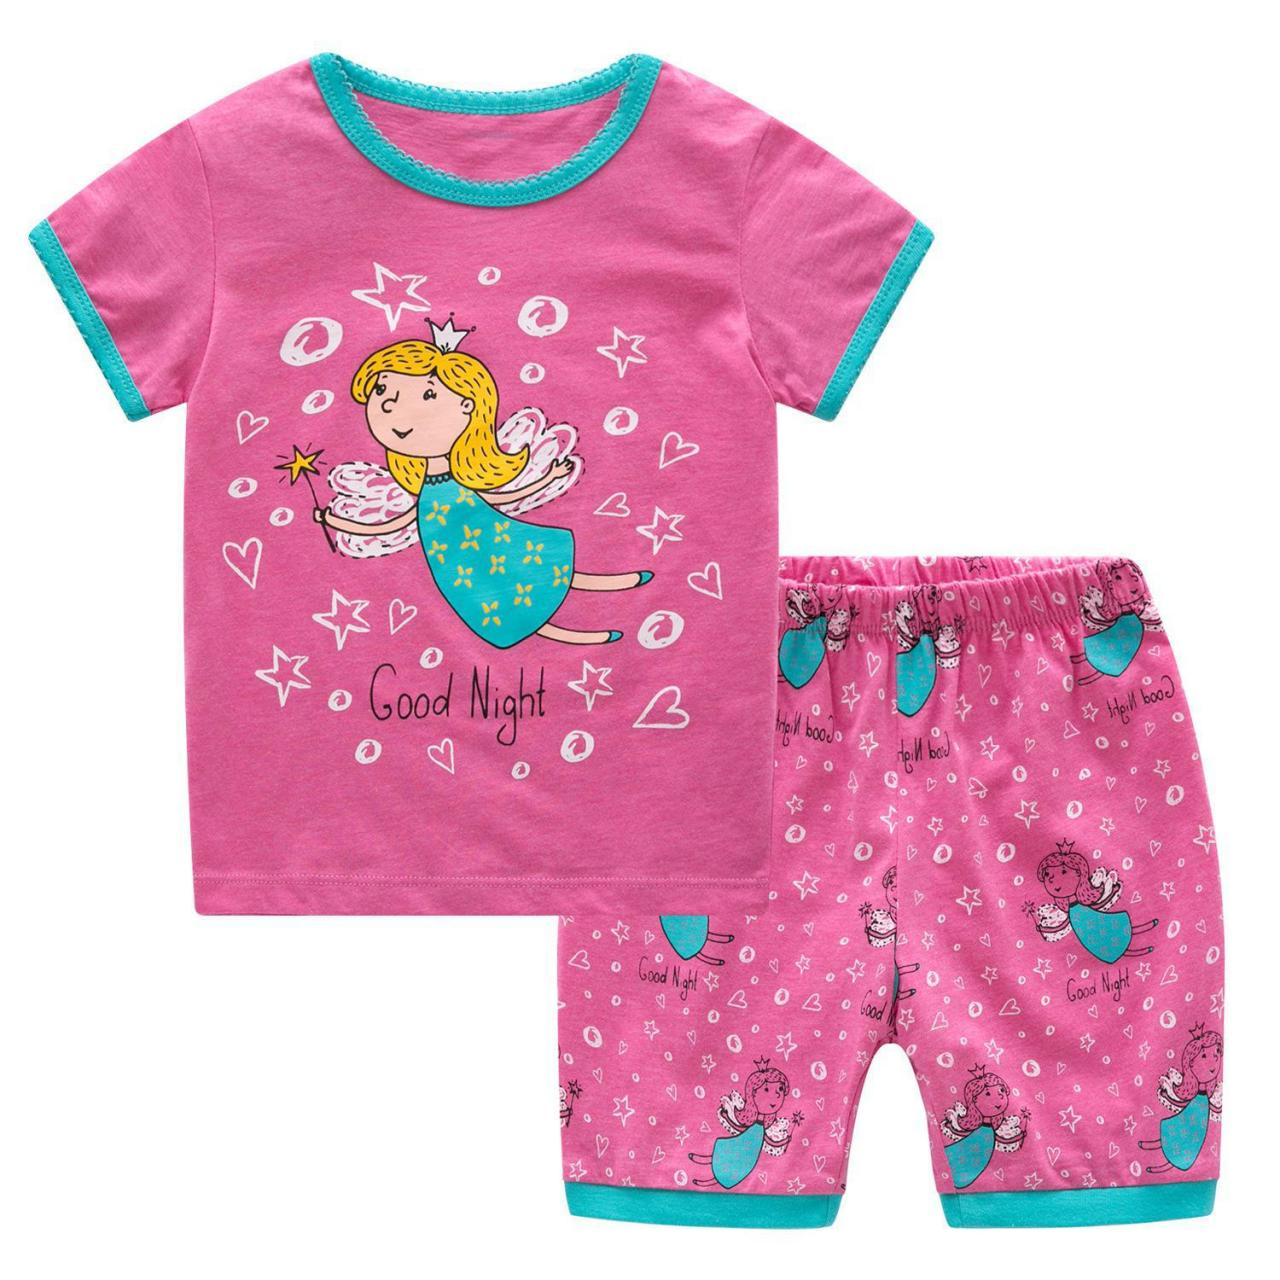 Quality Summer Wear Child Shorts Fashion Pajamas Clothes For Kid for sale